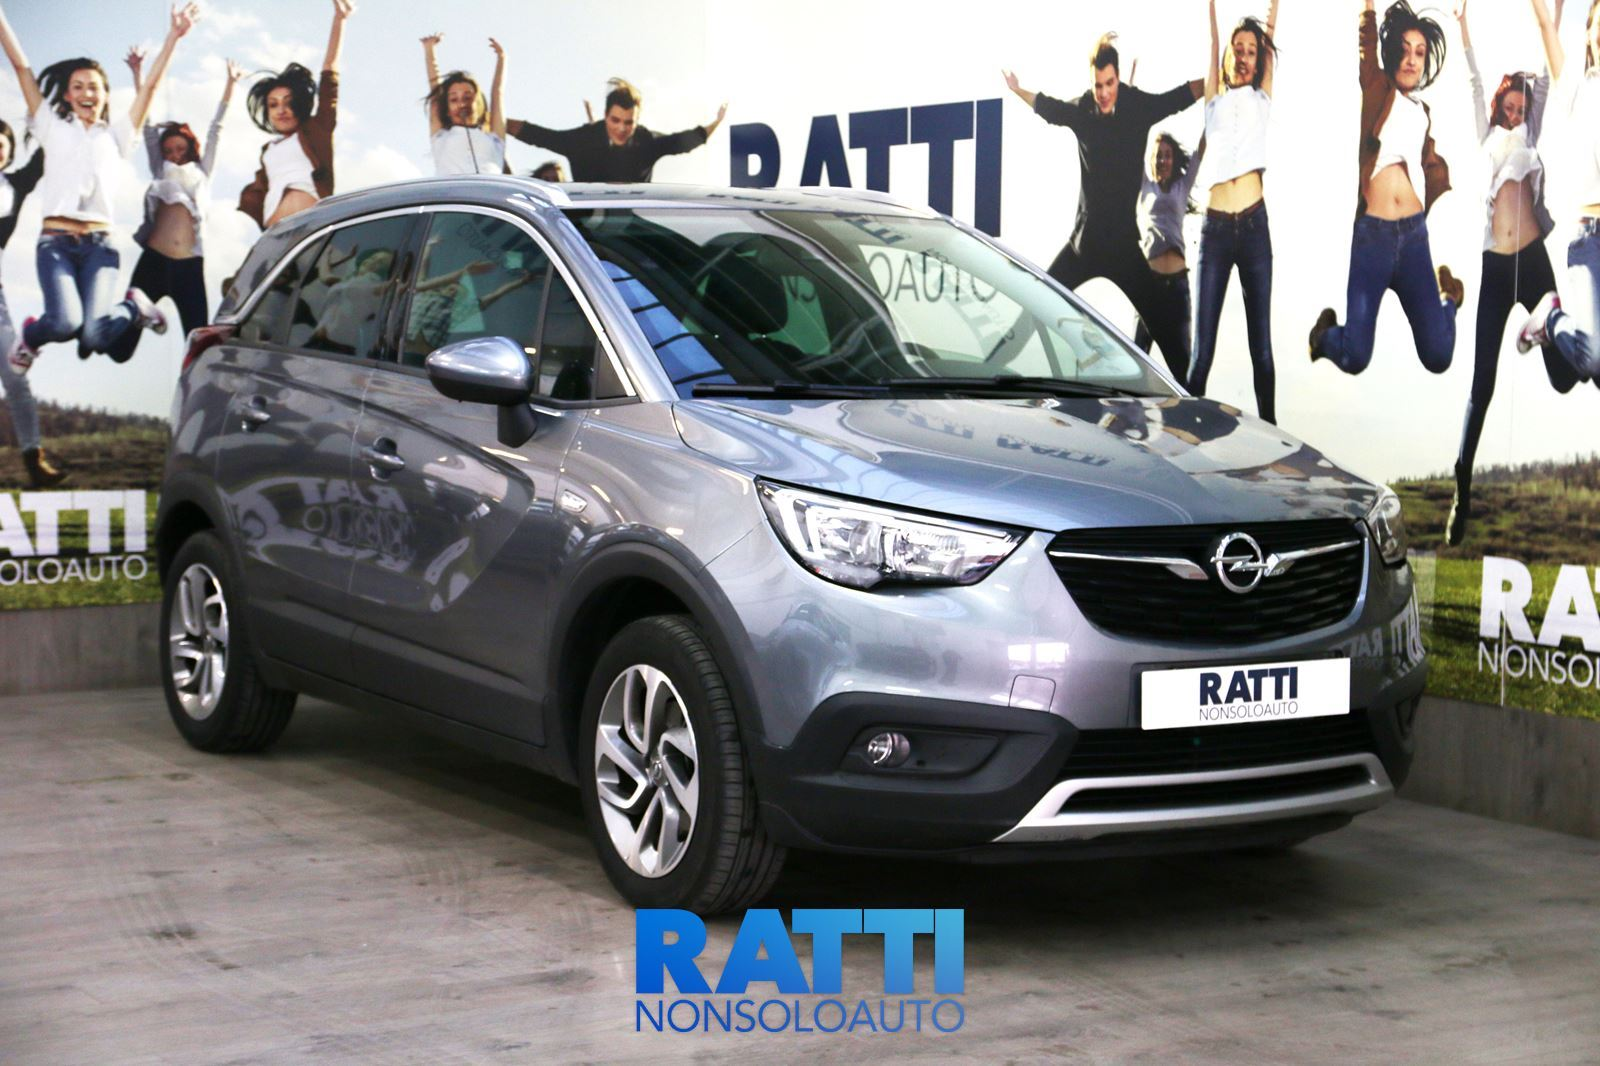 OPEL Crossland X Innovation 1.6 100cv MT  Satin Steel Gray  cambio Manuale Diesel Aziendale station wagon 5 porte 5 posti EURO 6